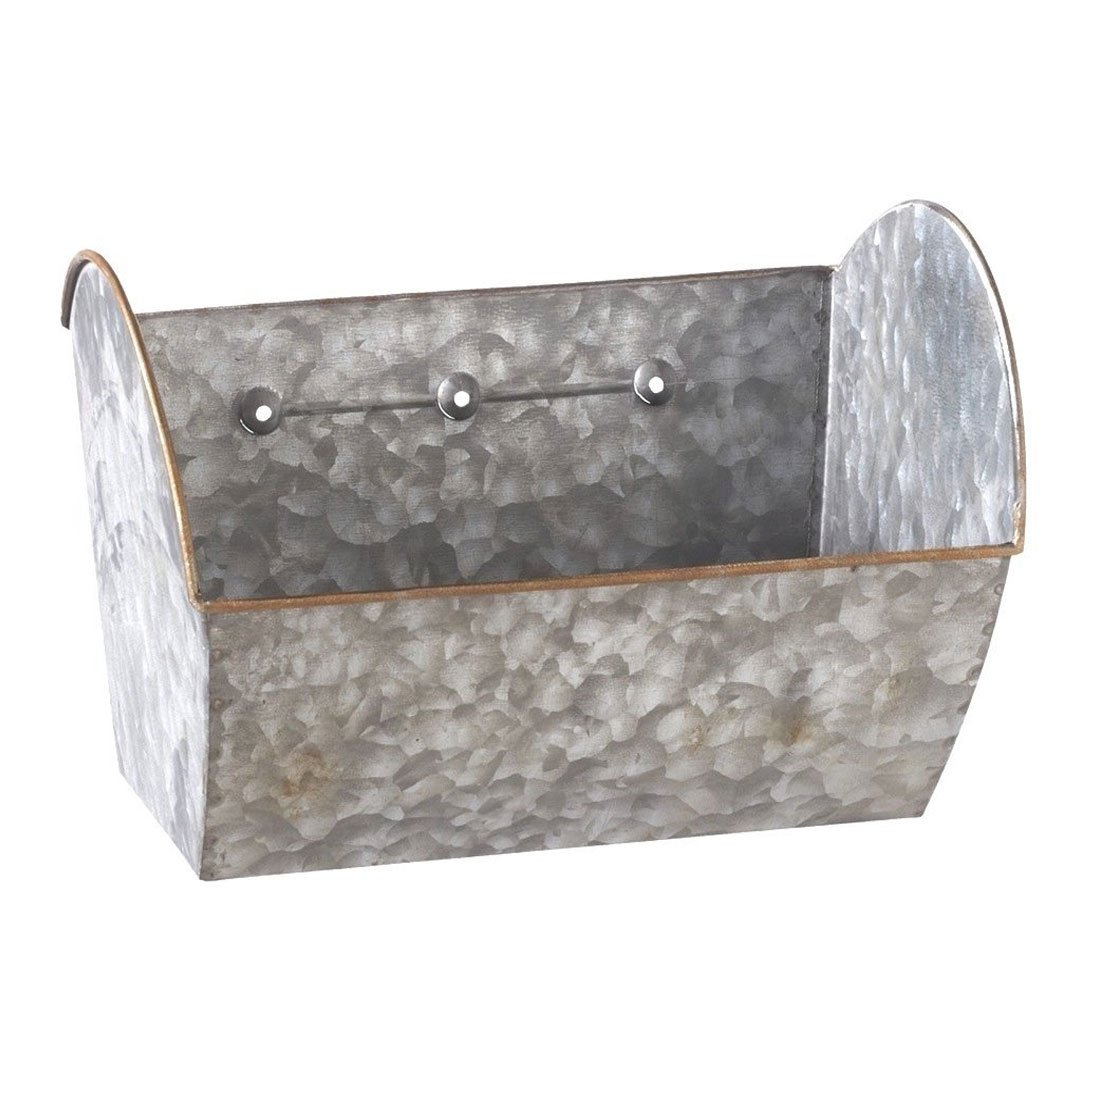 "8.5"" x 5.5"" Galvanized Metal Hanging Wall Planter"